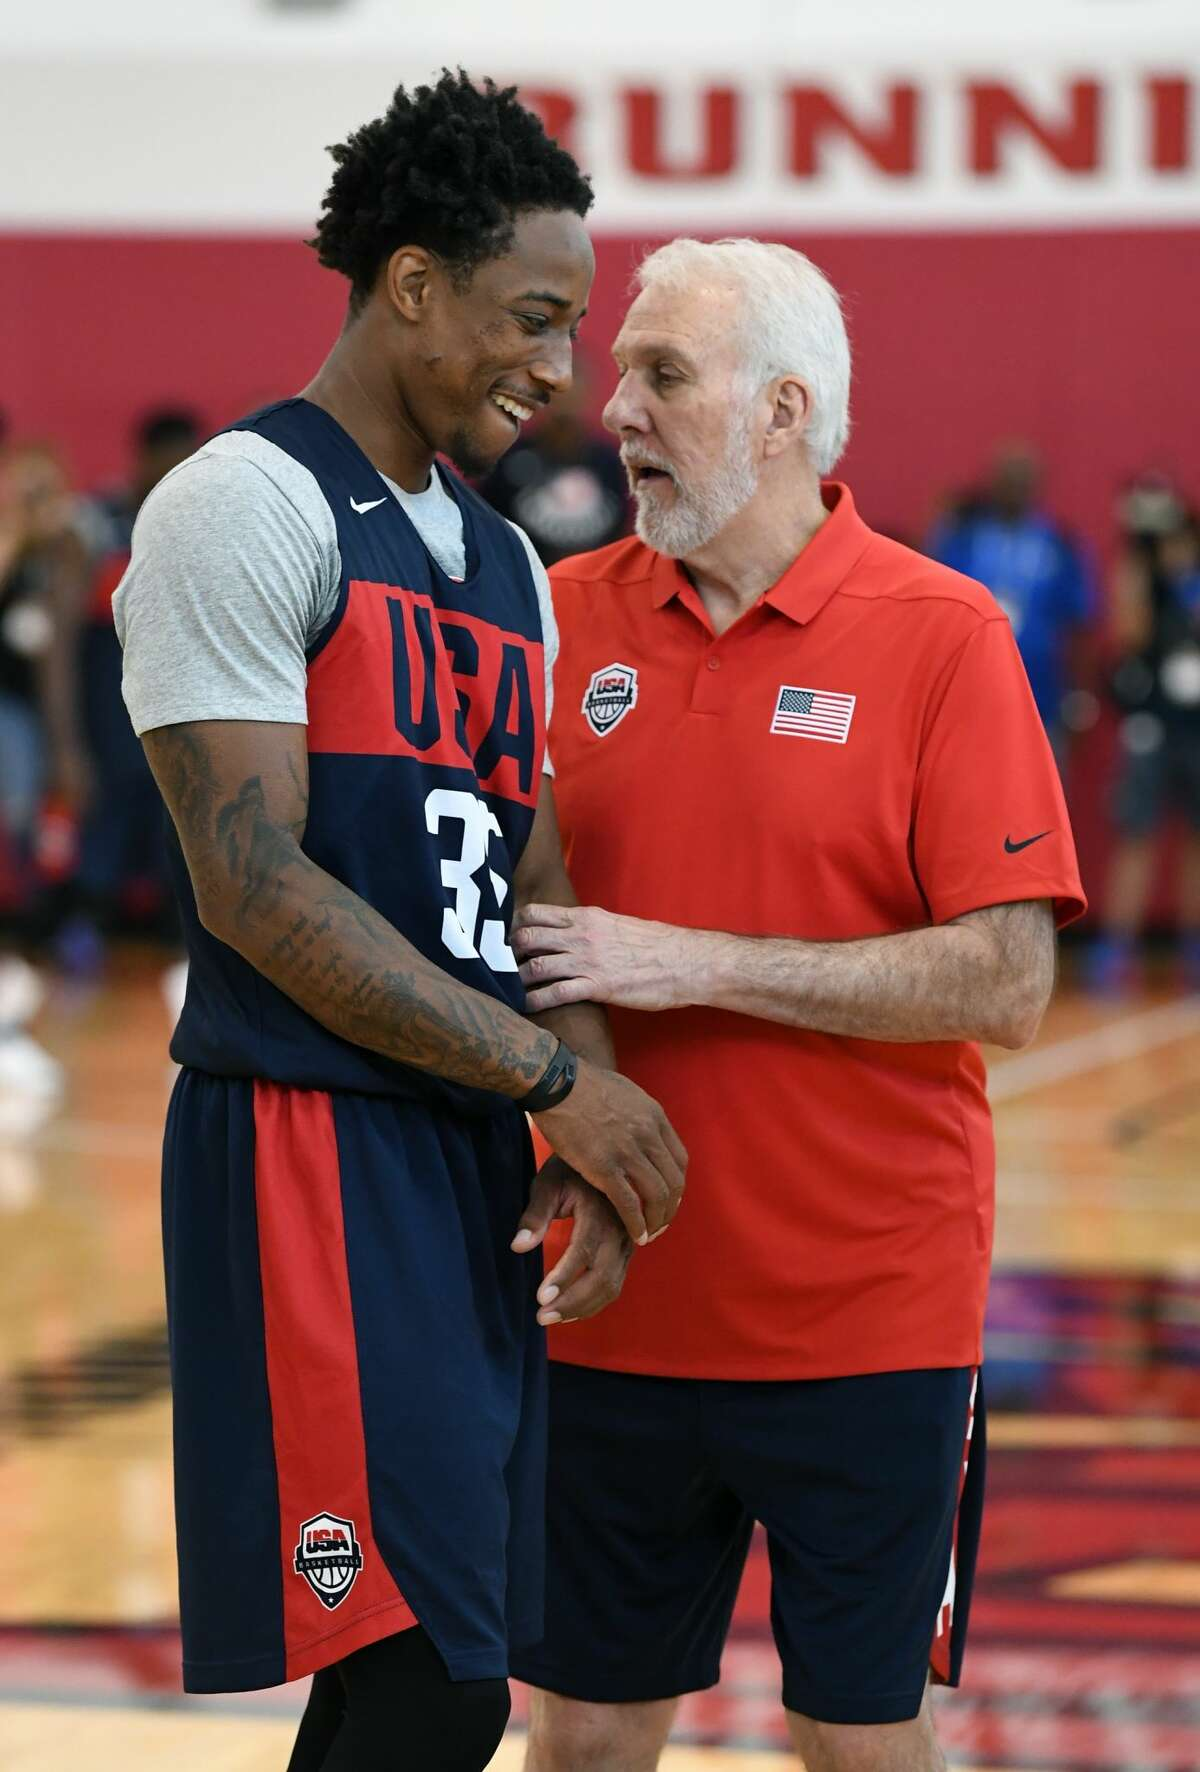 LAS VEGAS, NV - JULY 26: DeMar DeRozan #35 of the United States talks with head coach Gregg Popovich during a practice session at the 2018 USA Basketball Men's National Team minicamp at the Mendenhall Center at UNLV on July 26, 2018 in Las Vegas, Nevada. (Photo by Ethan Miller/Getty Images)